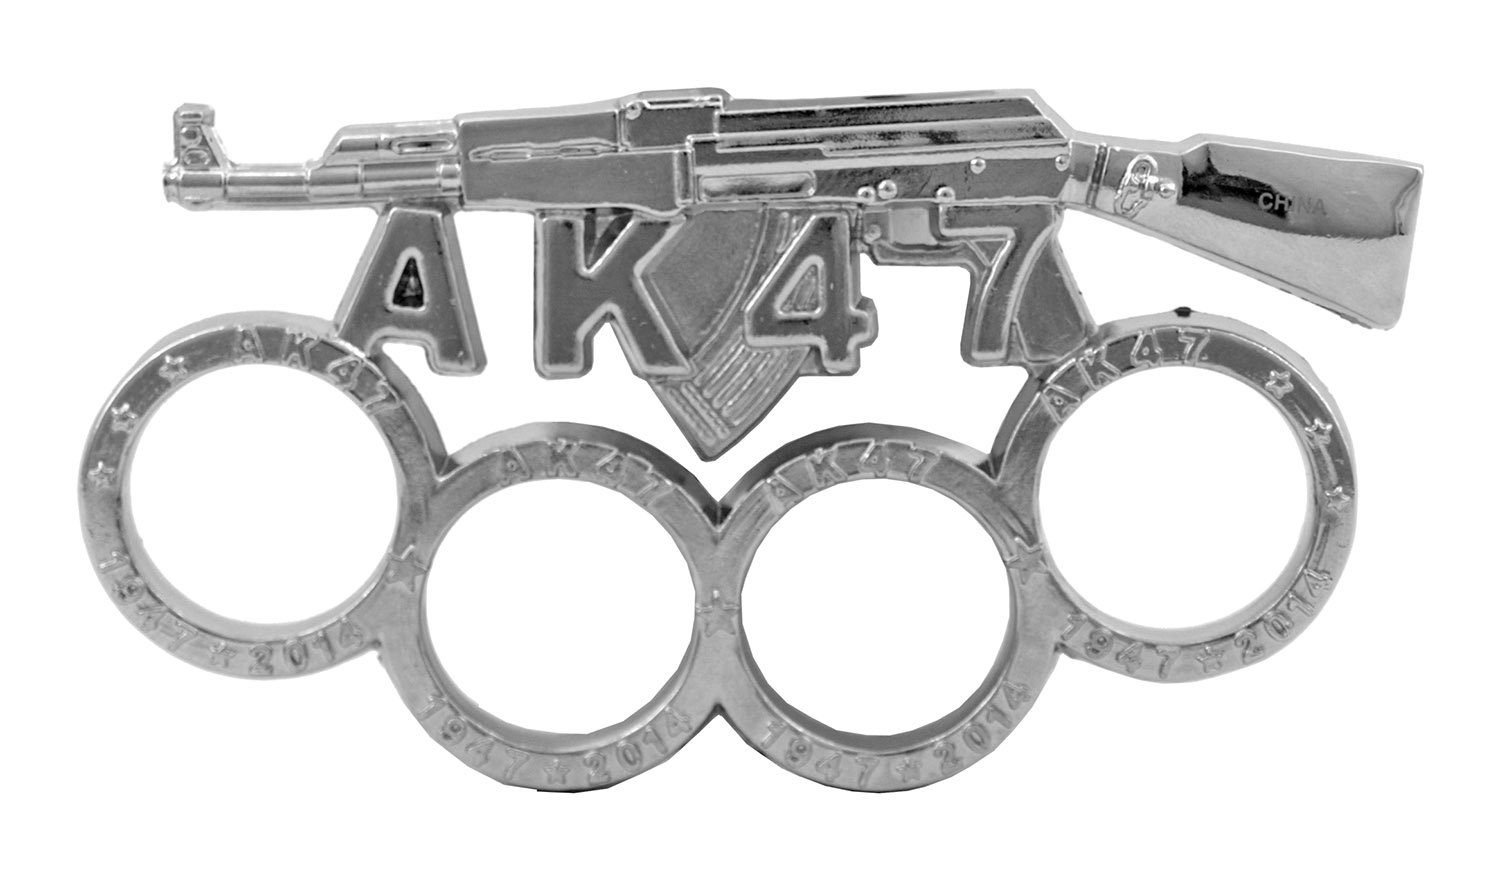 AK47 Russian Mob Gangster Brass Knuckles Duster Paper Weight - Chrome